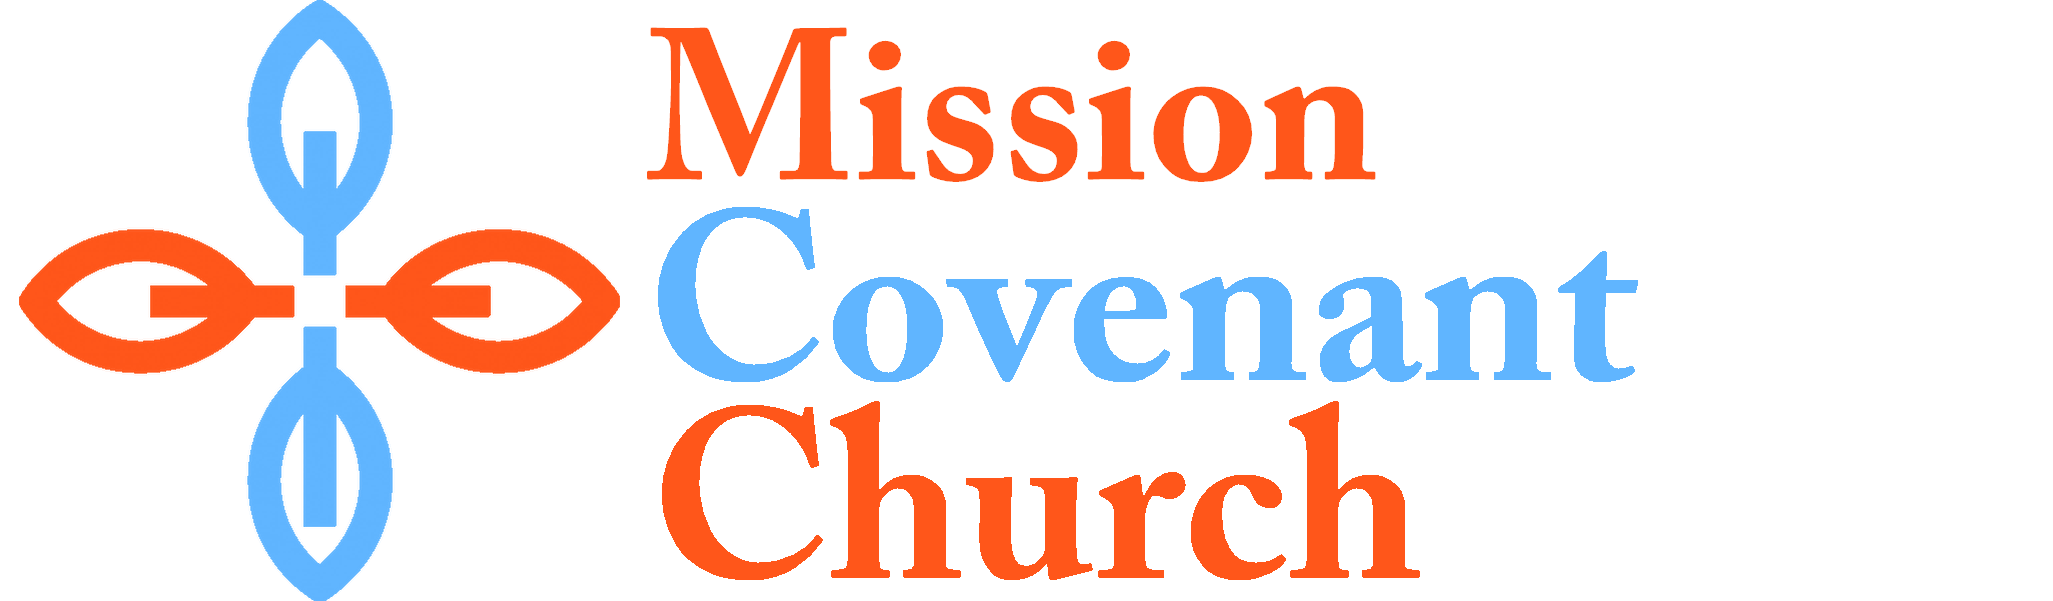 Mission Covenant Church